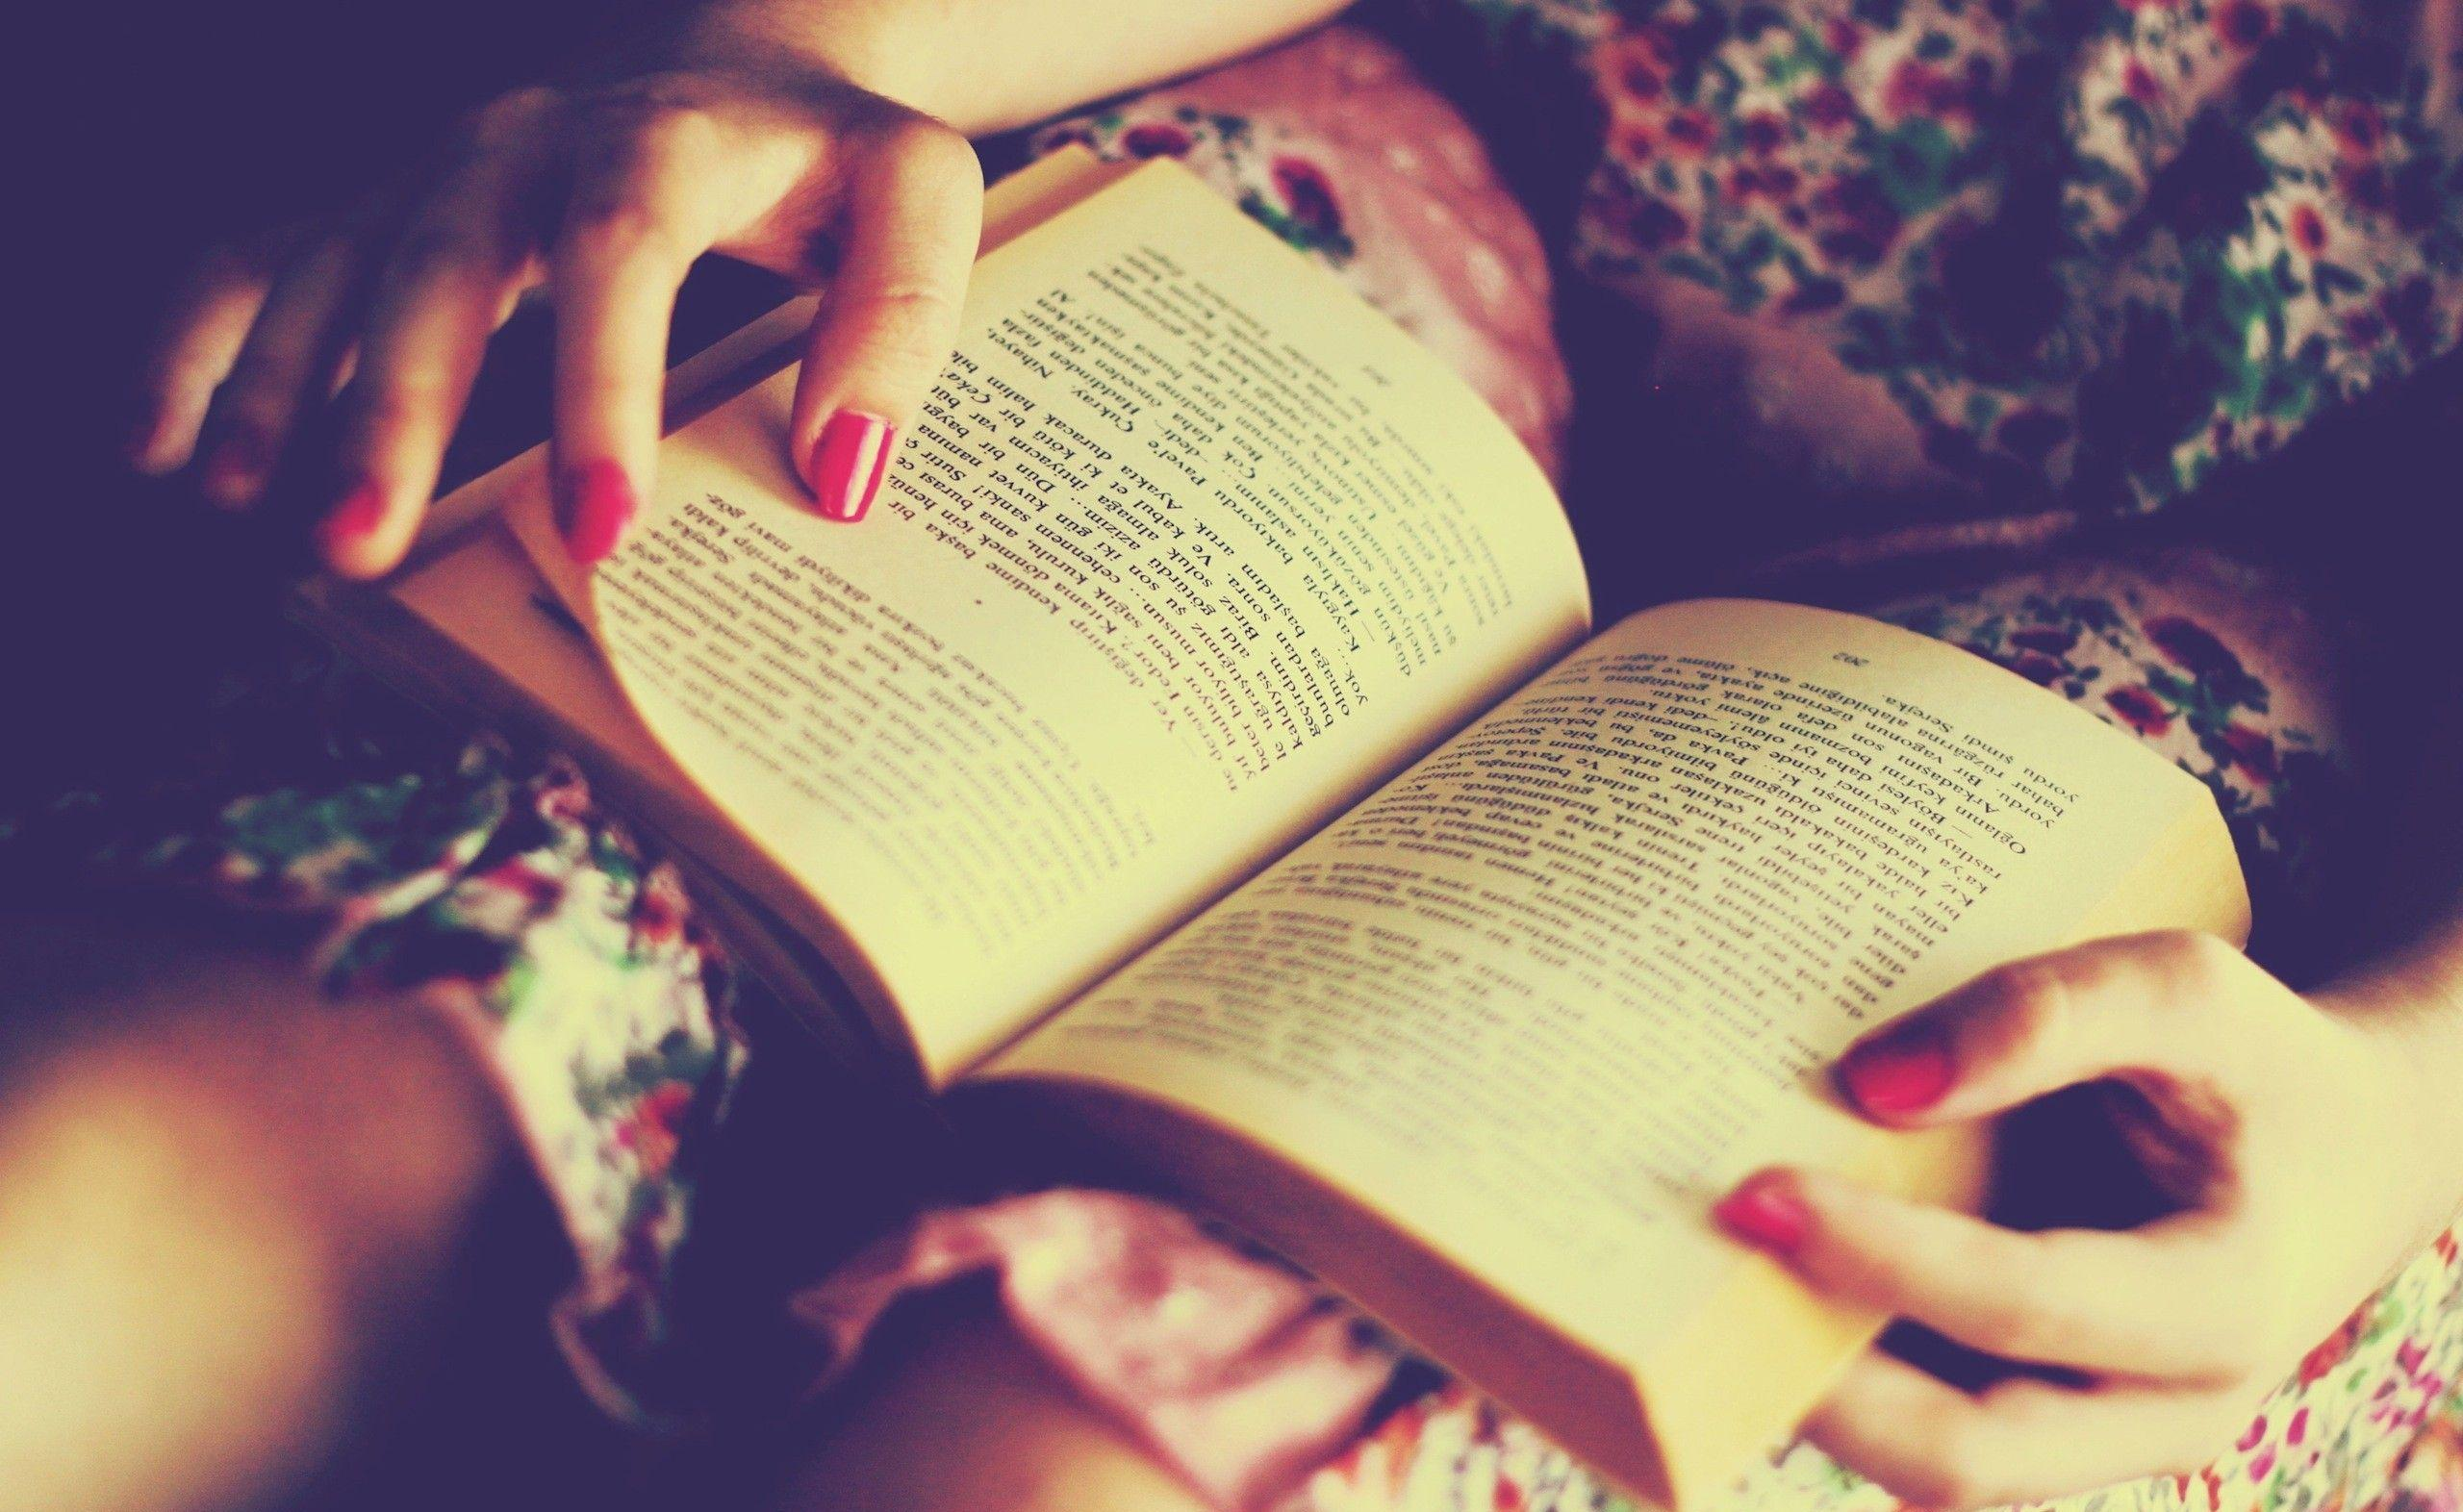 Reading Books Wallpapers Wallpaper Cave